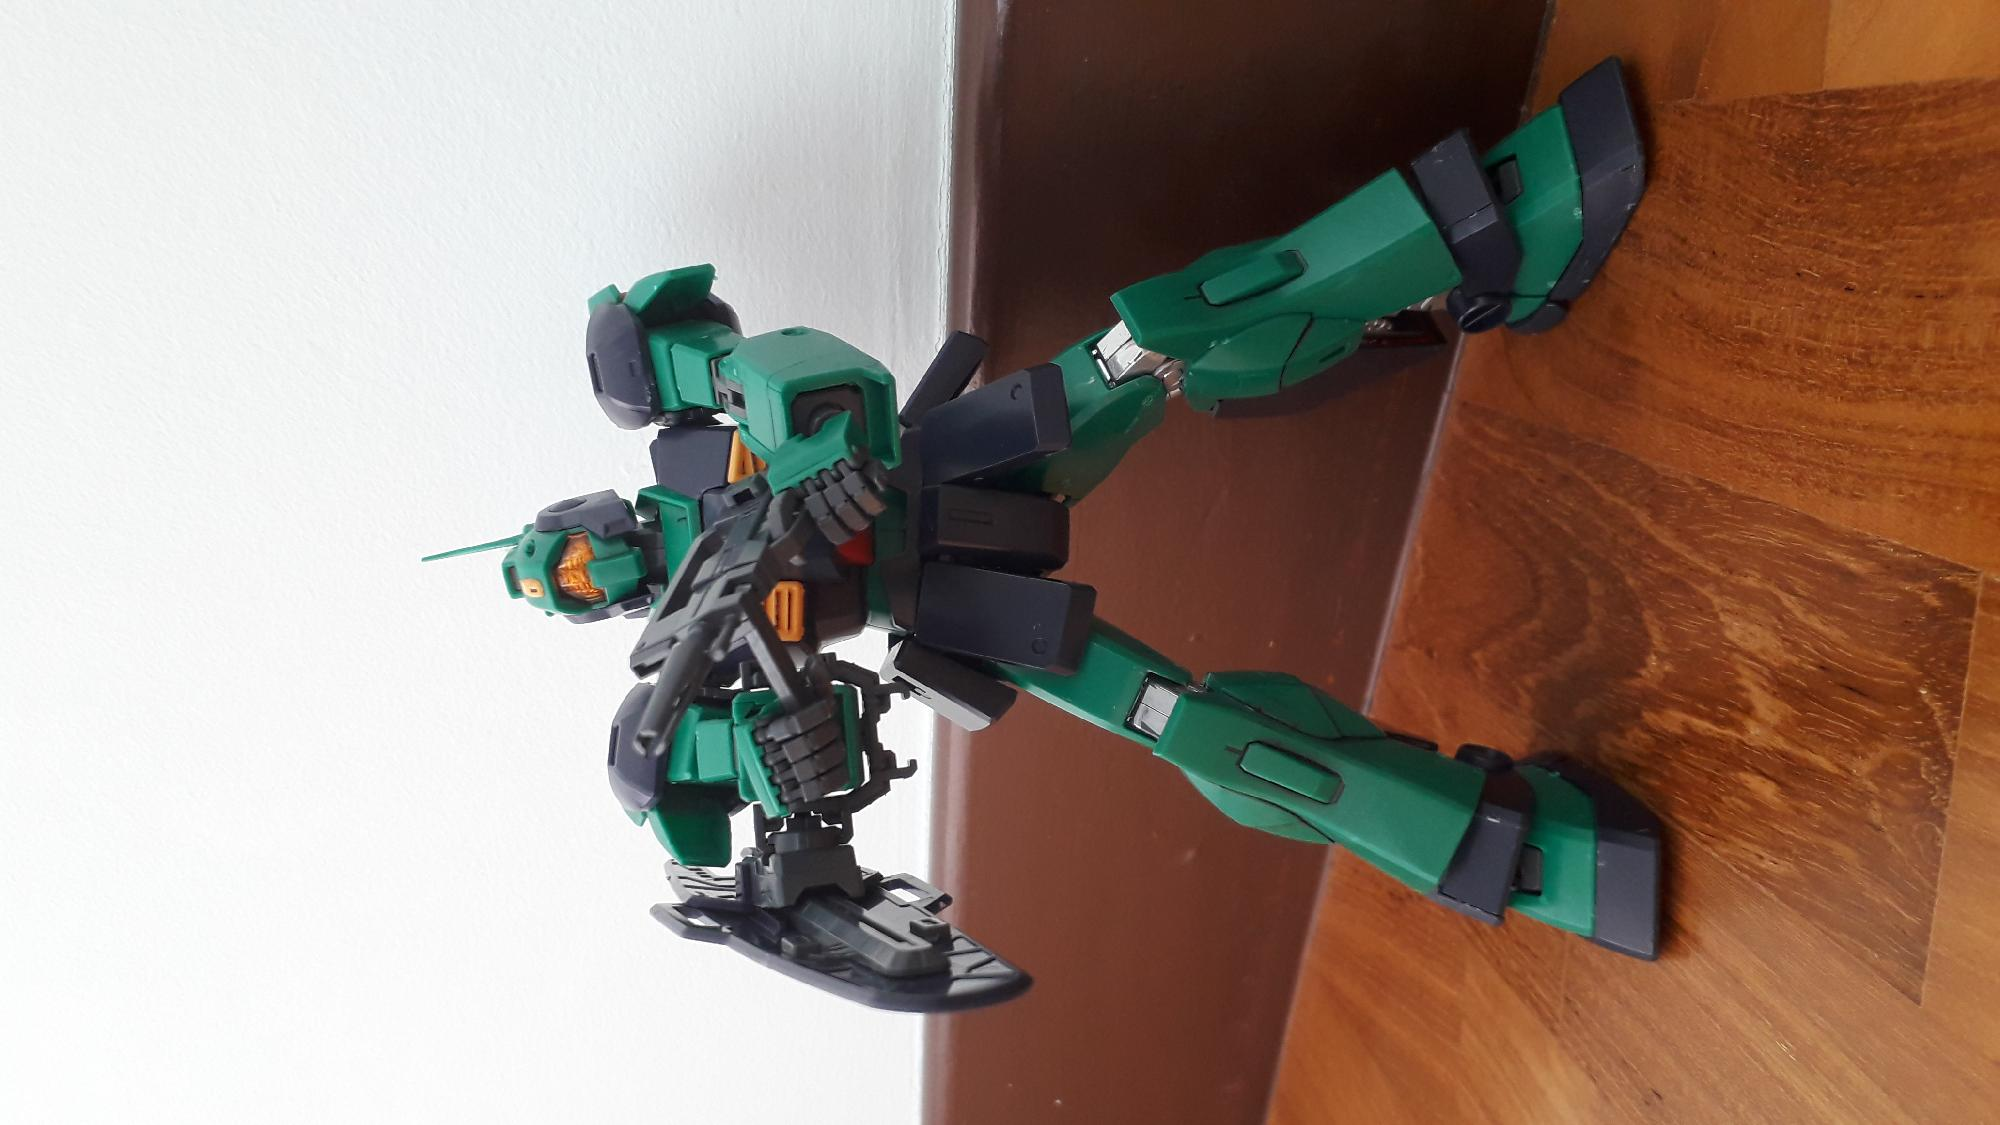 The MG nemo is completed